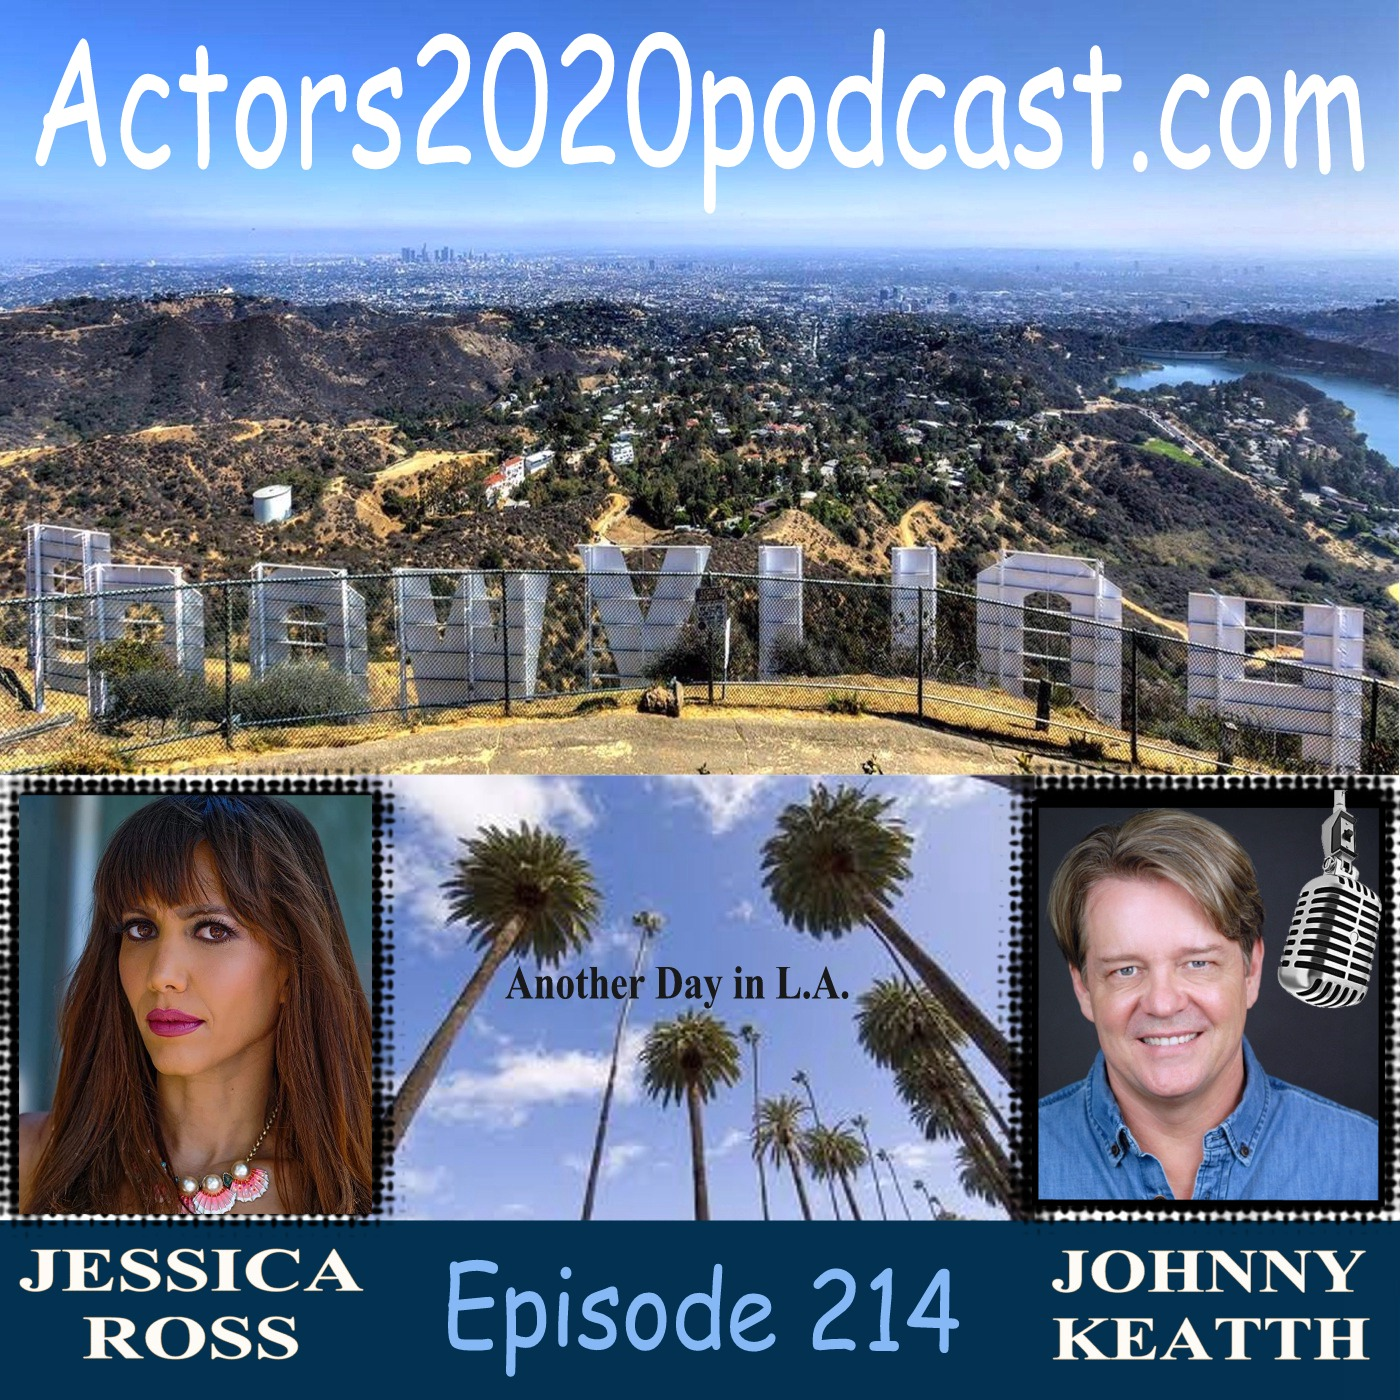 The Actors 2020 Podcast Welcomes Jessica Ross